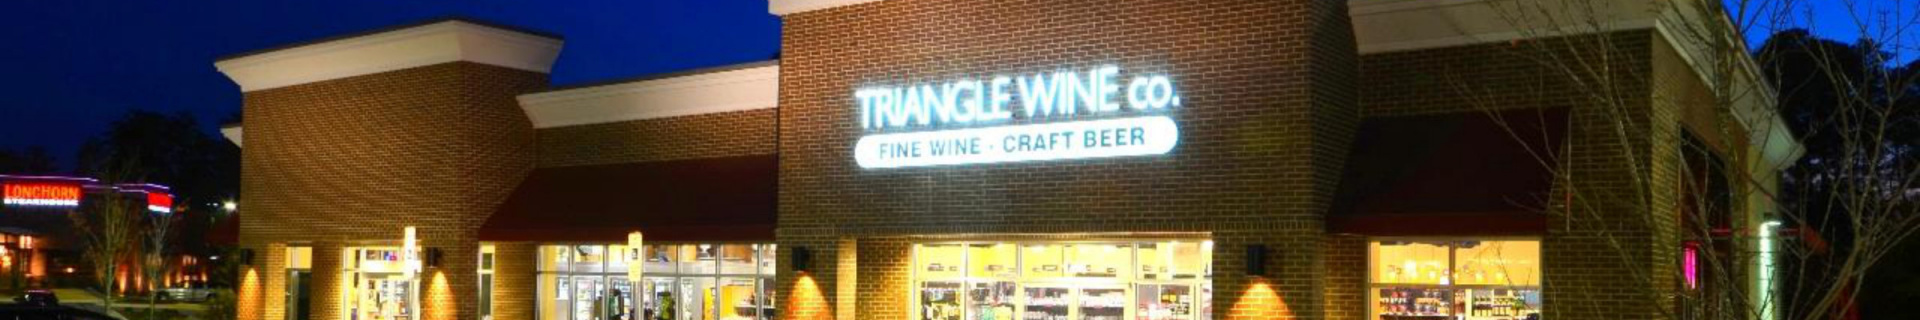 Triangle Wine Company Wine Beer Store Southern Pines North Carolina